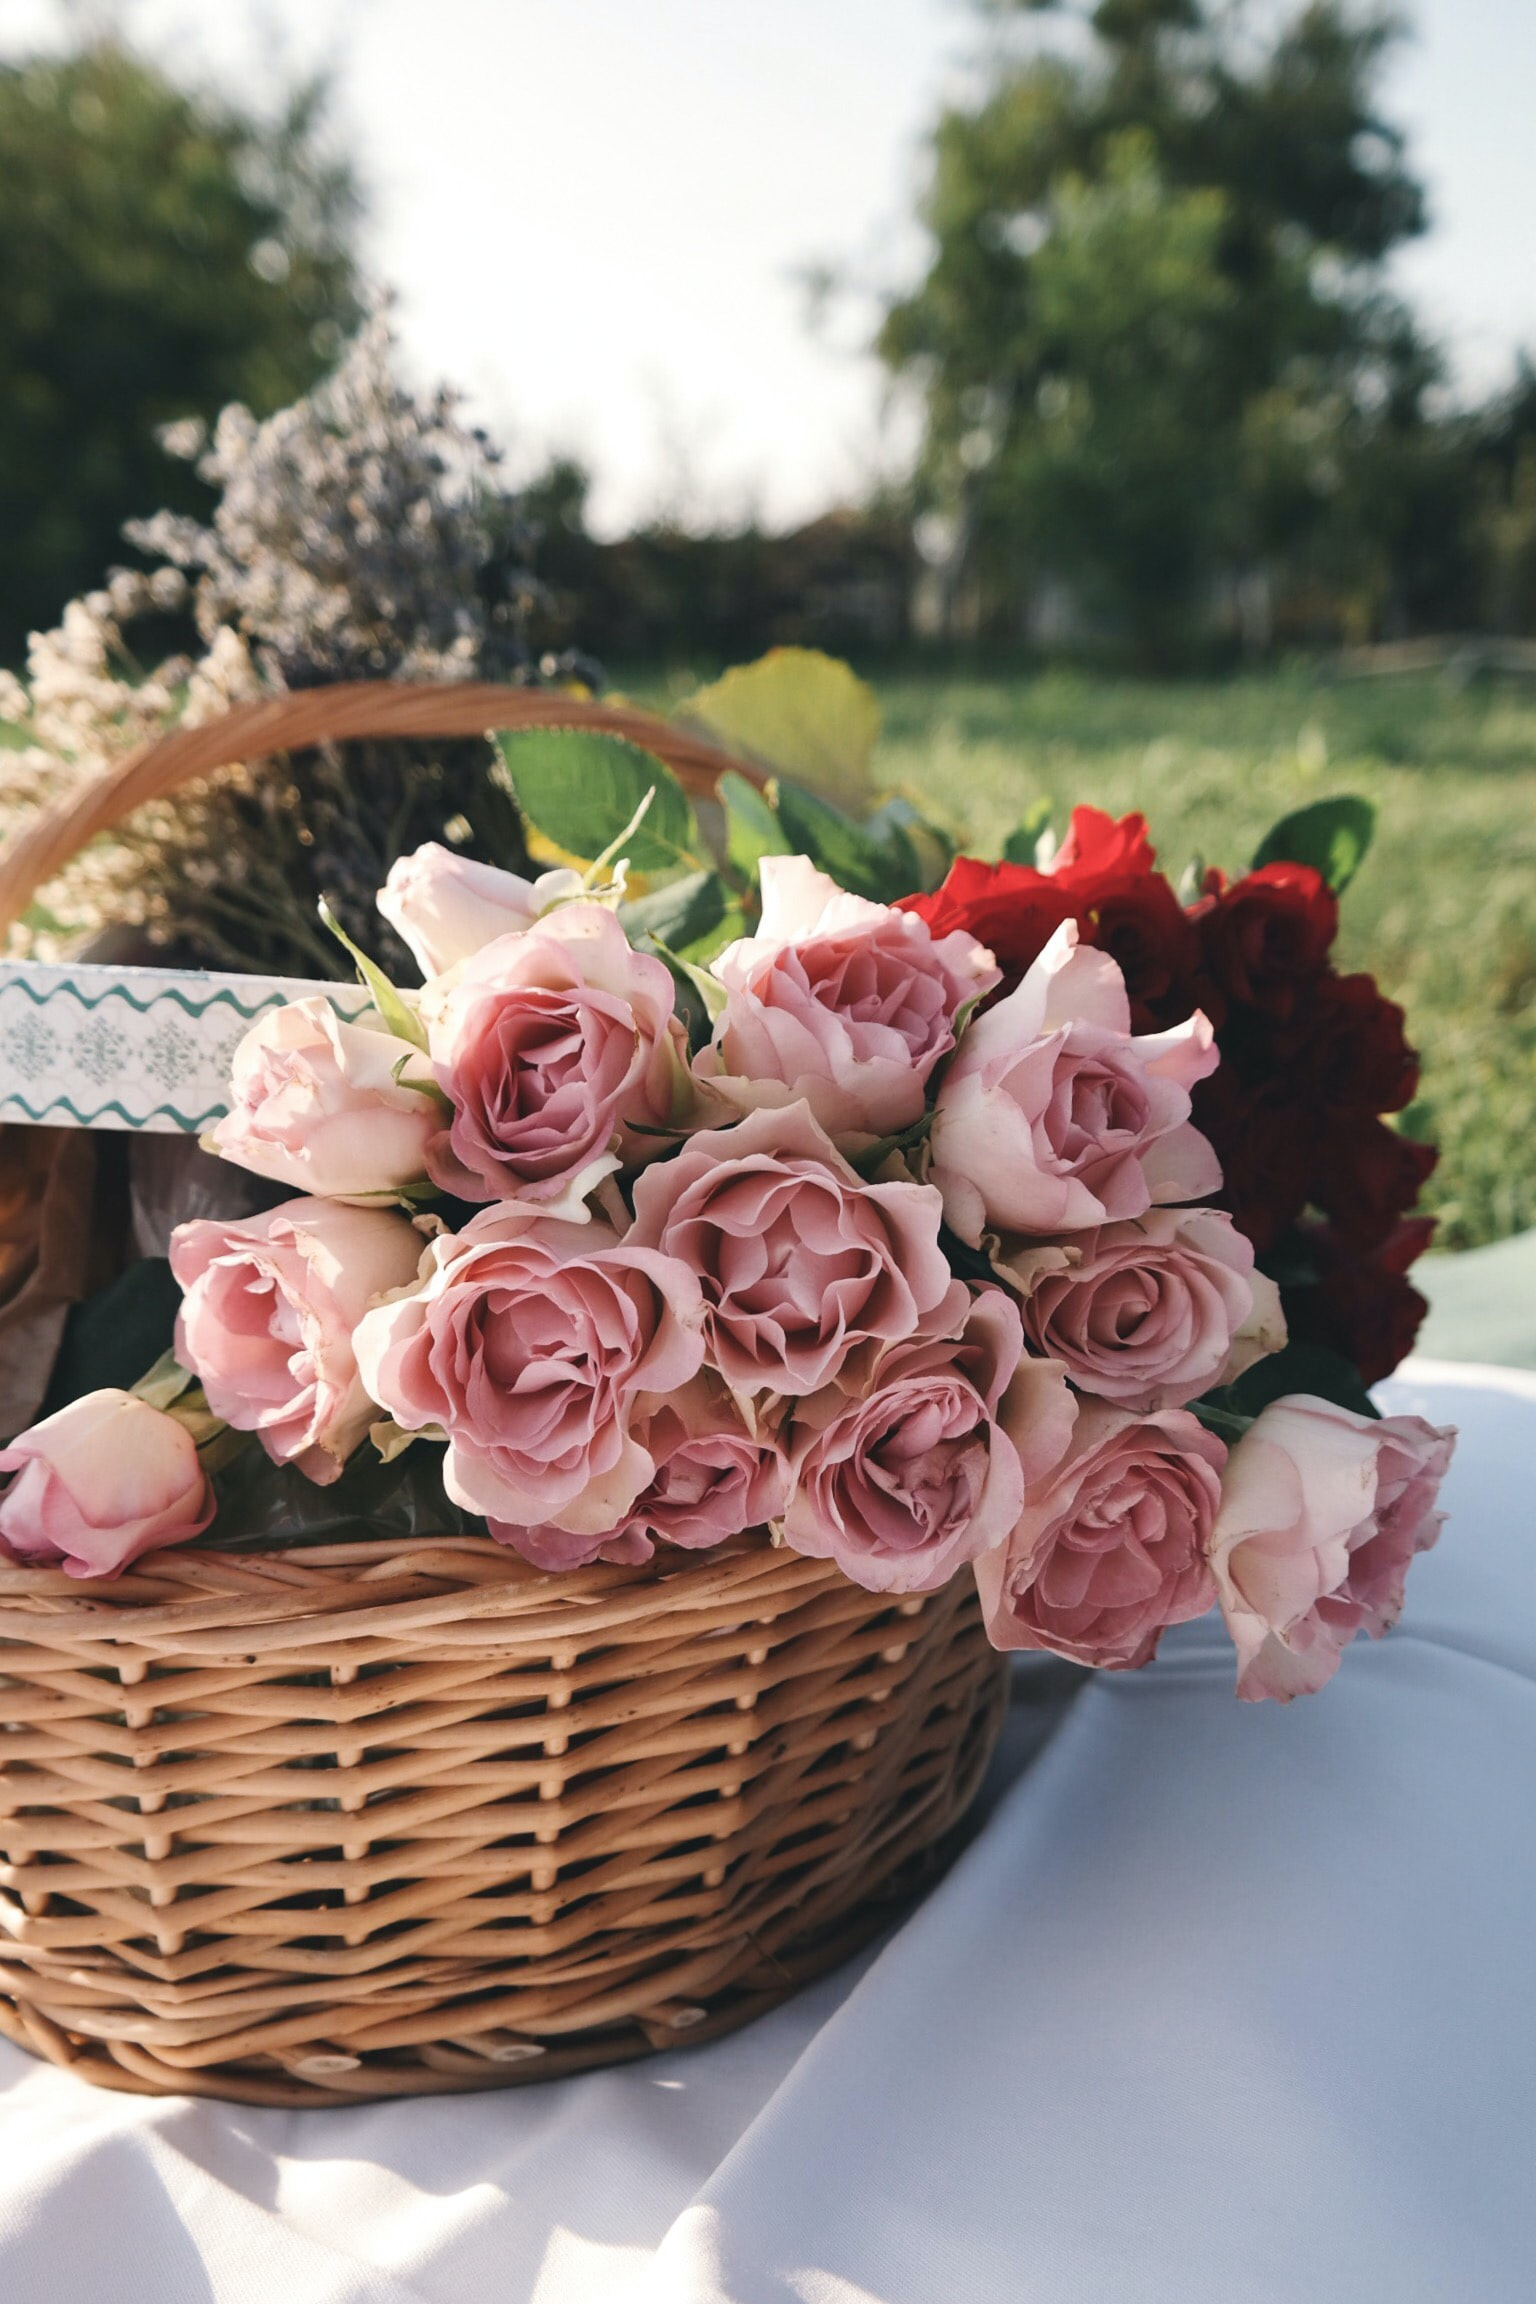 Pink roses sitting inside a brown wicker basket.